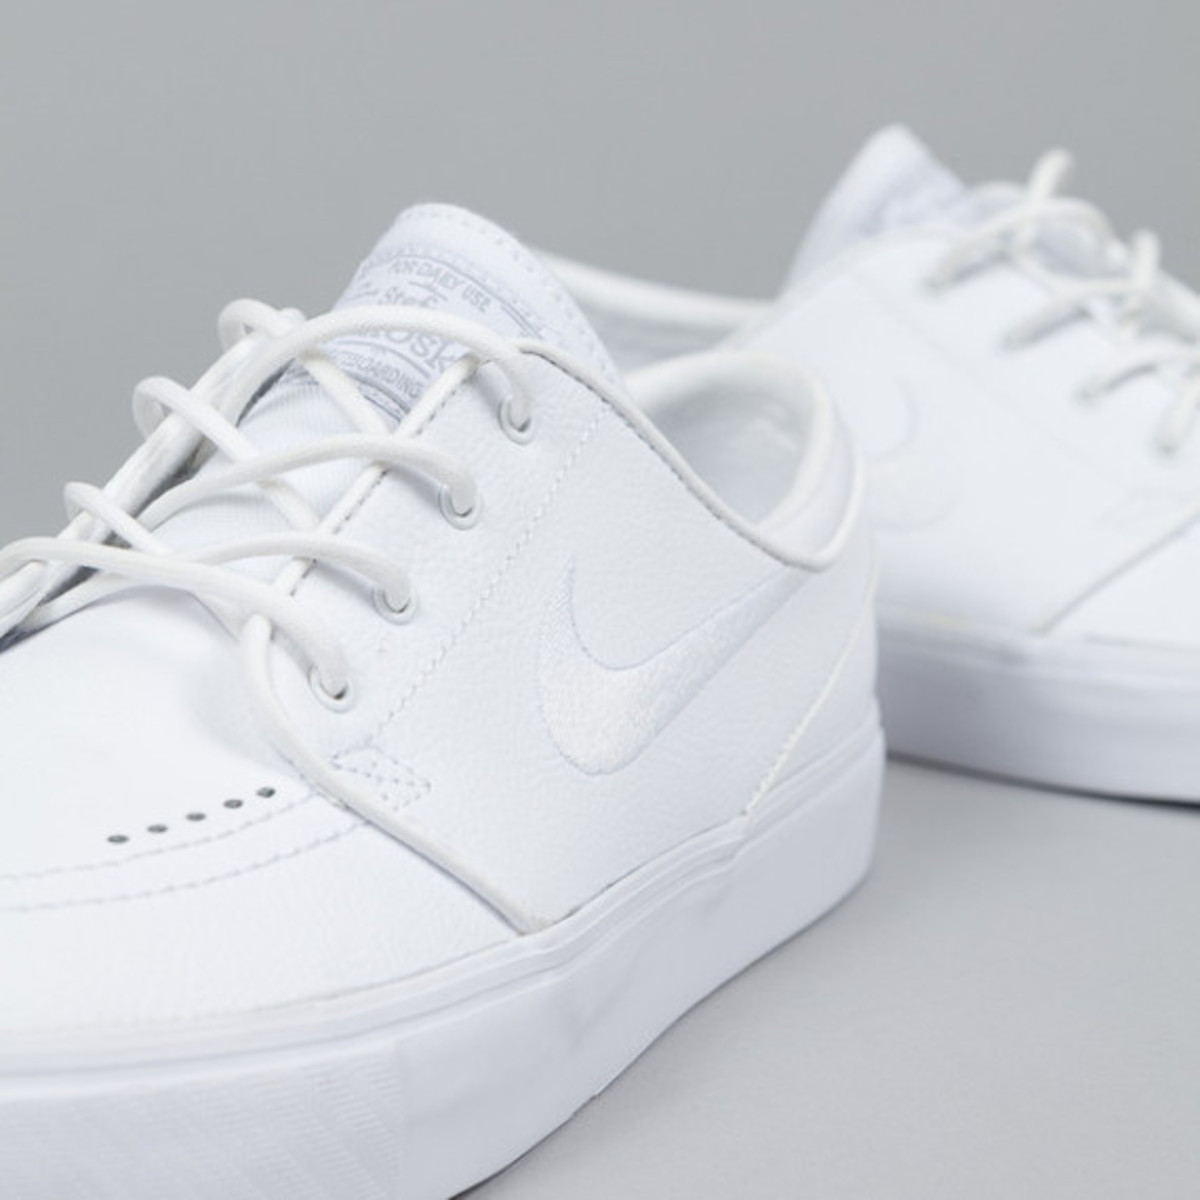 nike-sb-stefan-janoski-white-white-leather-04